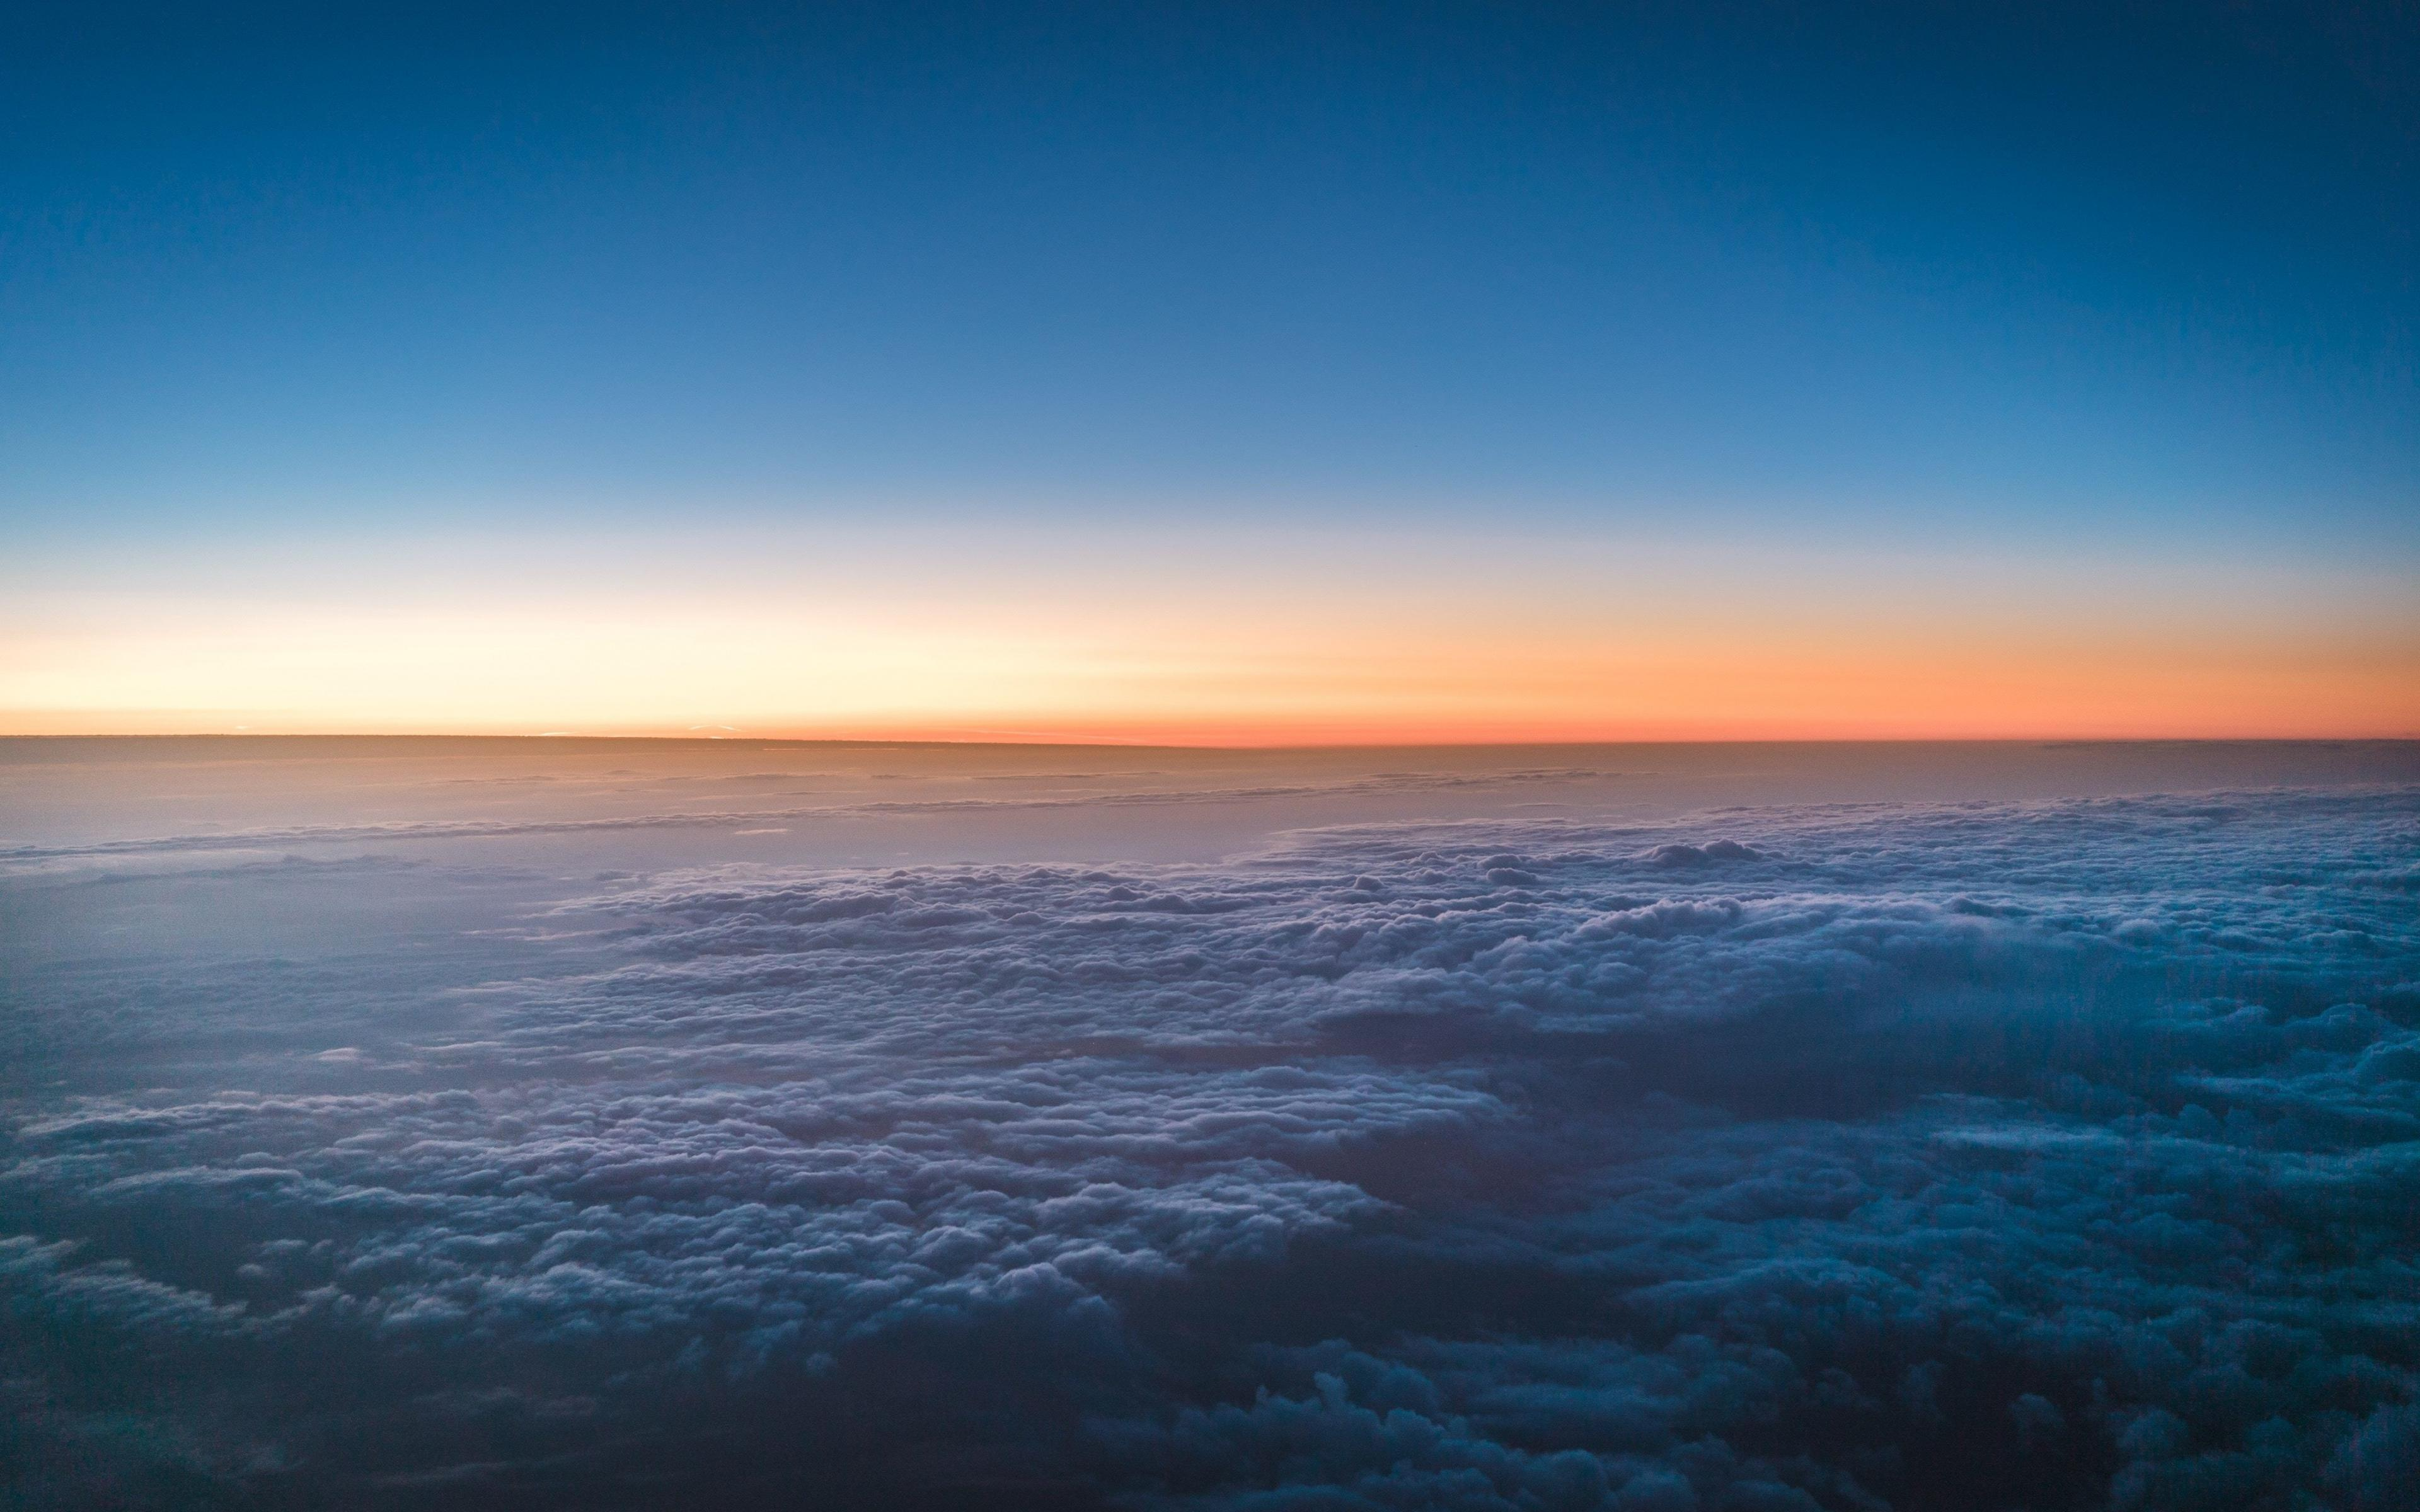 Sky Above Clouds High Definition Wallpaper